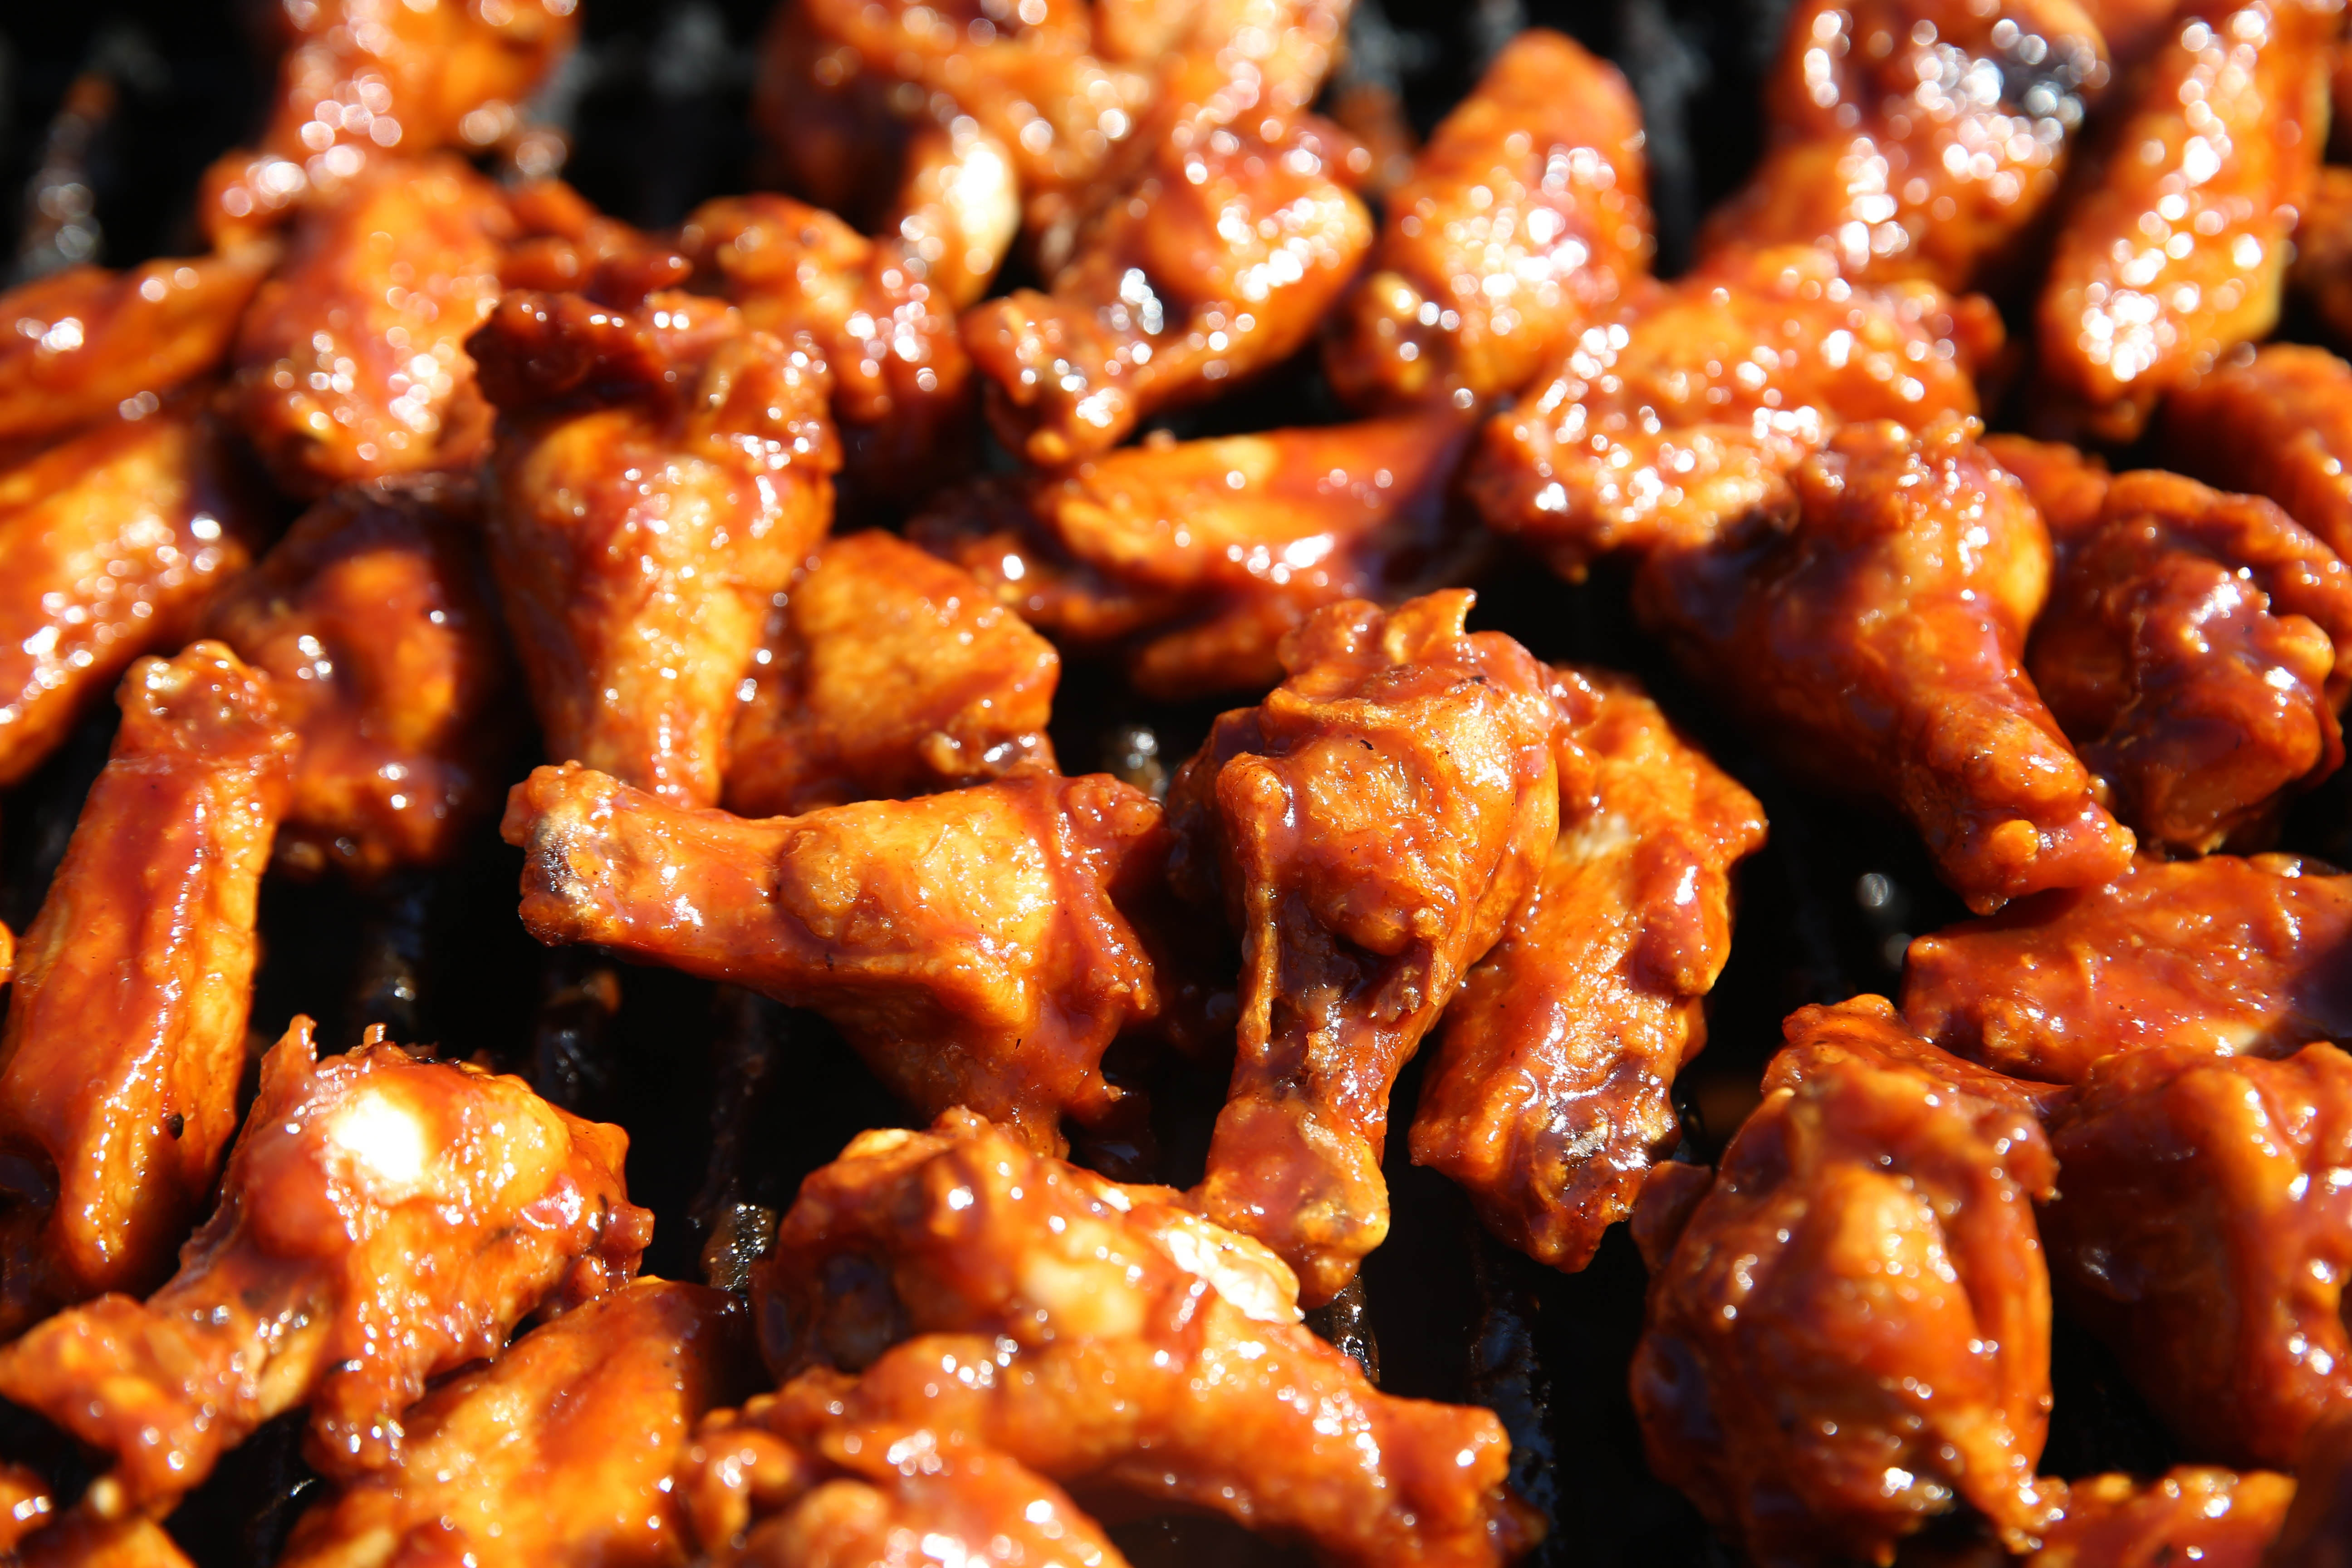 Tony Principato of Duffs sauces and grill their specialty Dr. Pepper BBQ wings.(Sharon Cantillon/Buffalo News)